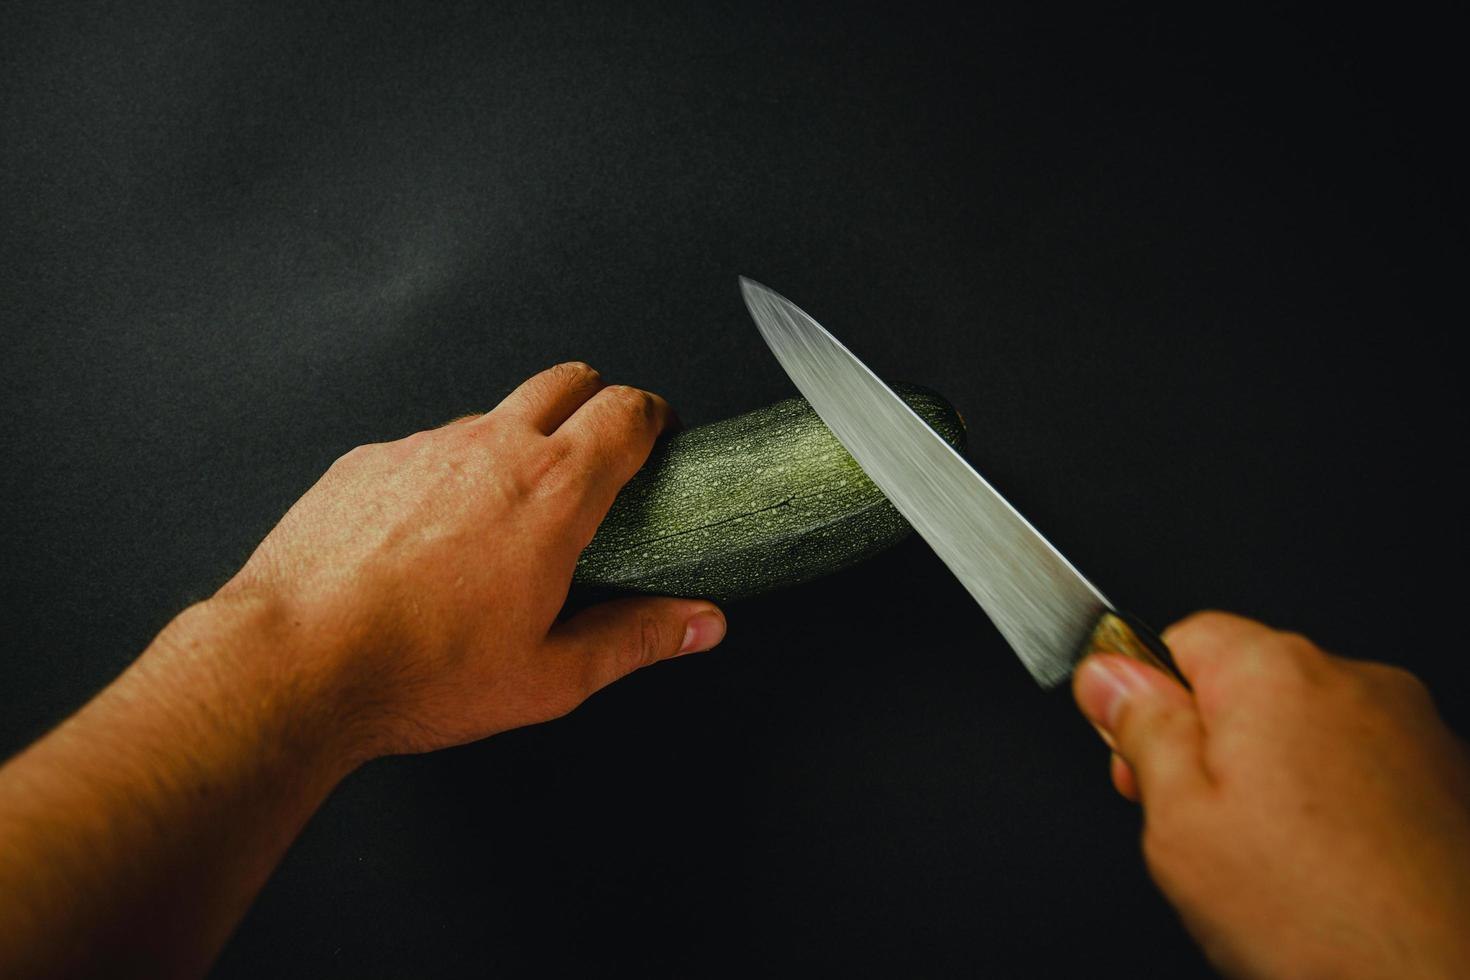 Two hands and knife cutting a cucumber photo